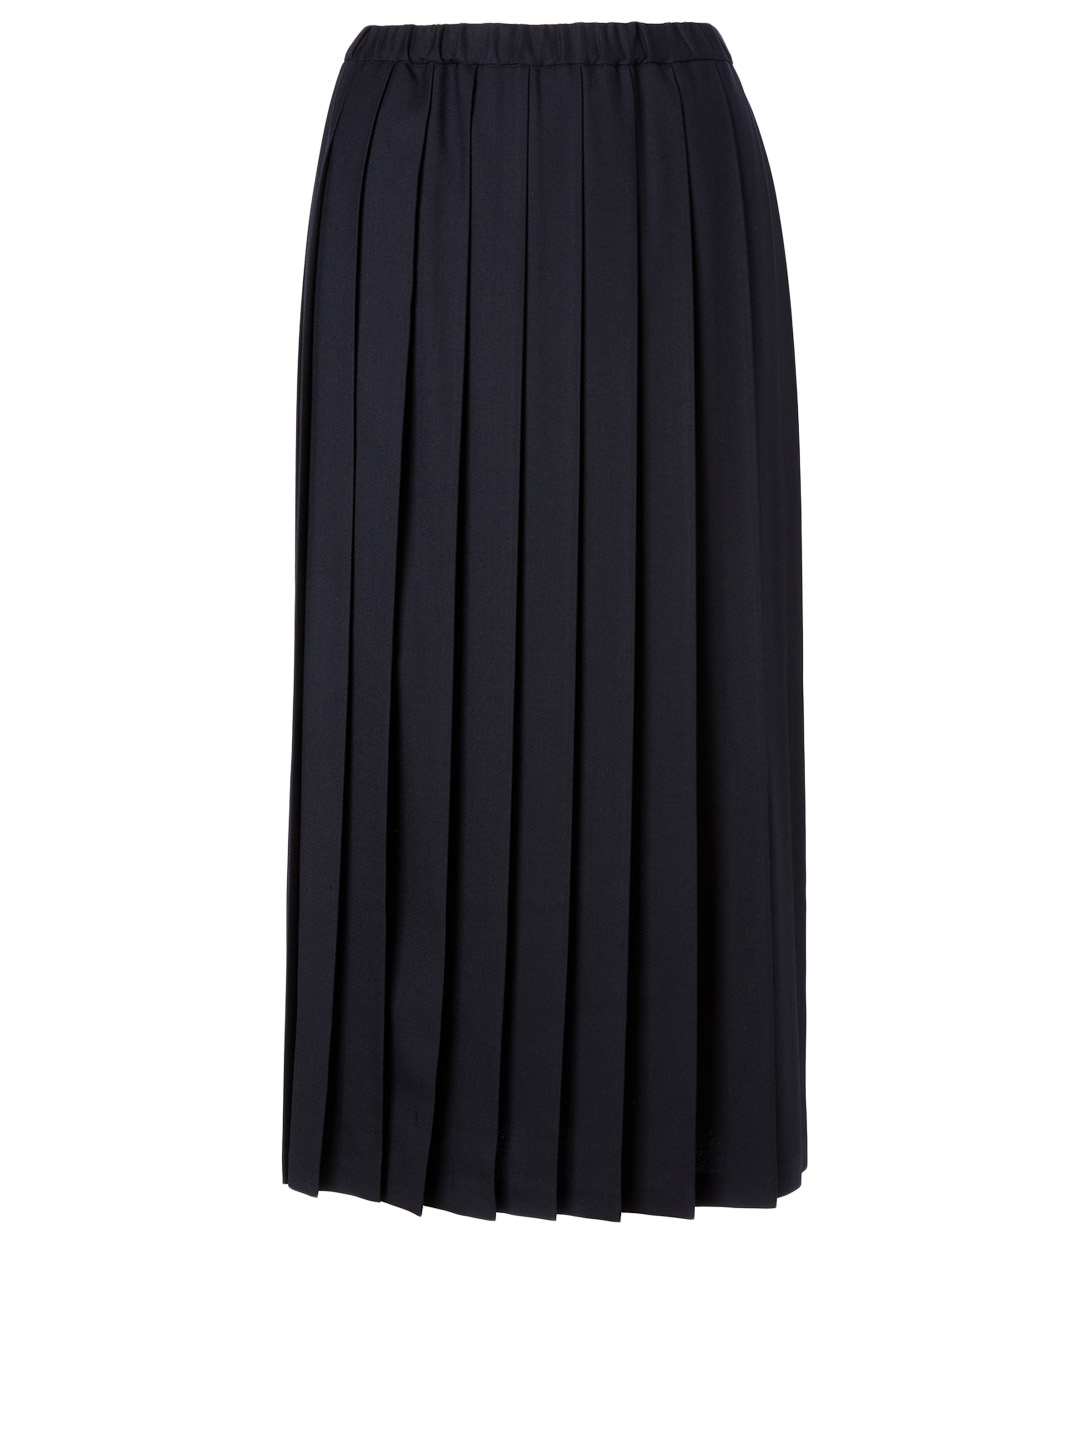 JUNYA WATANABE Wool And Cotton Midi Skirt Women's Blue